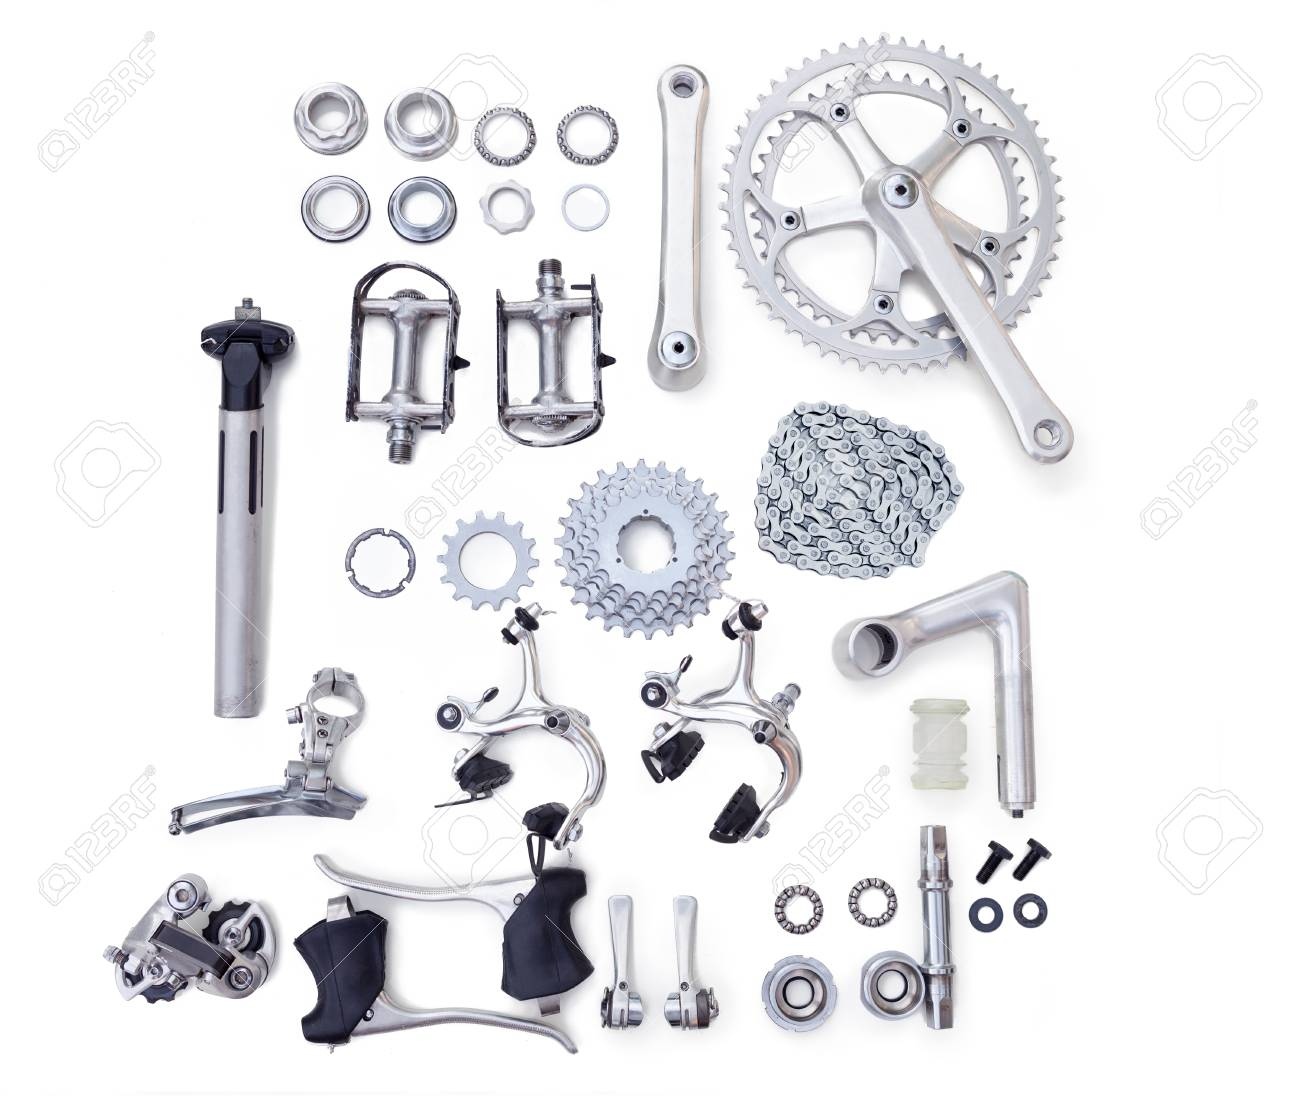 Bicycle Spare Parts For The Repair Of A Bicycle Stock Photo Picture